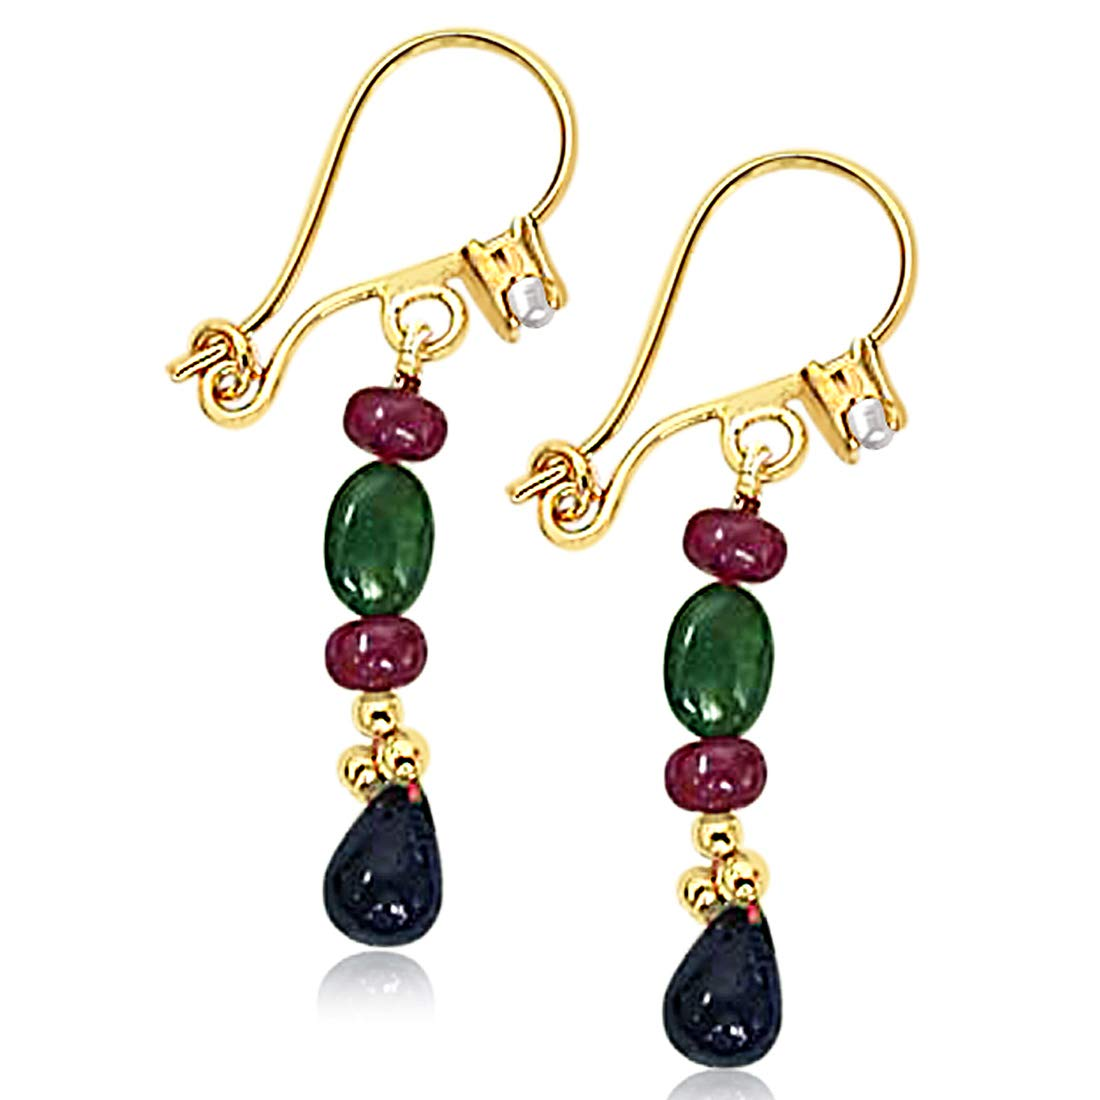 Real Drop Sapphire, Oval Emerald & Ruby Beads Hanging Earrings for Women (SE128)